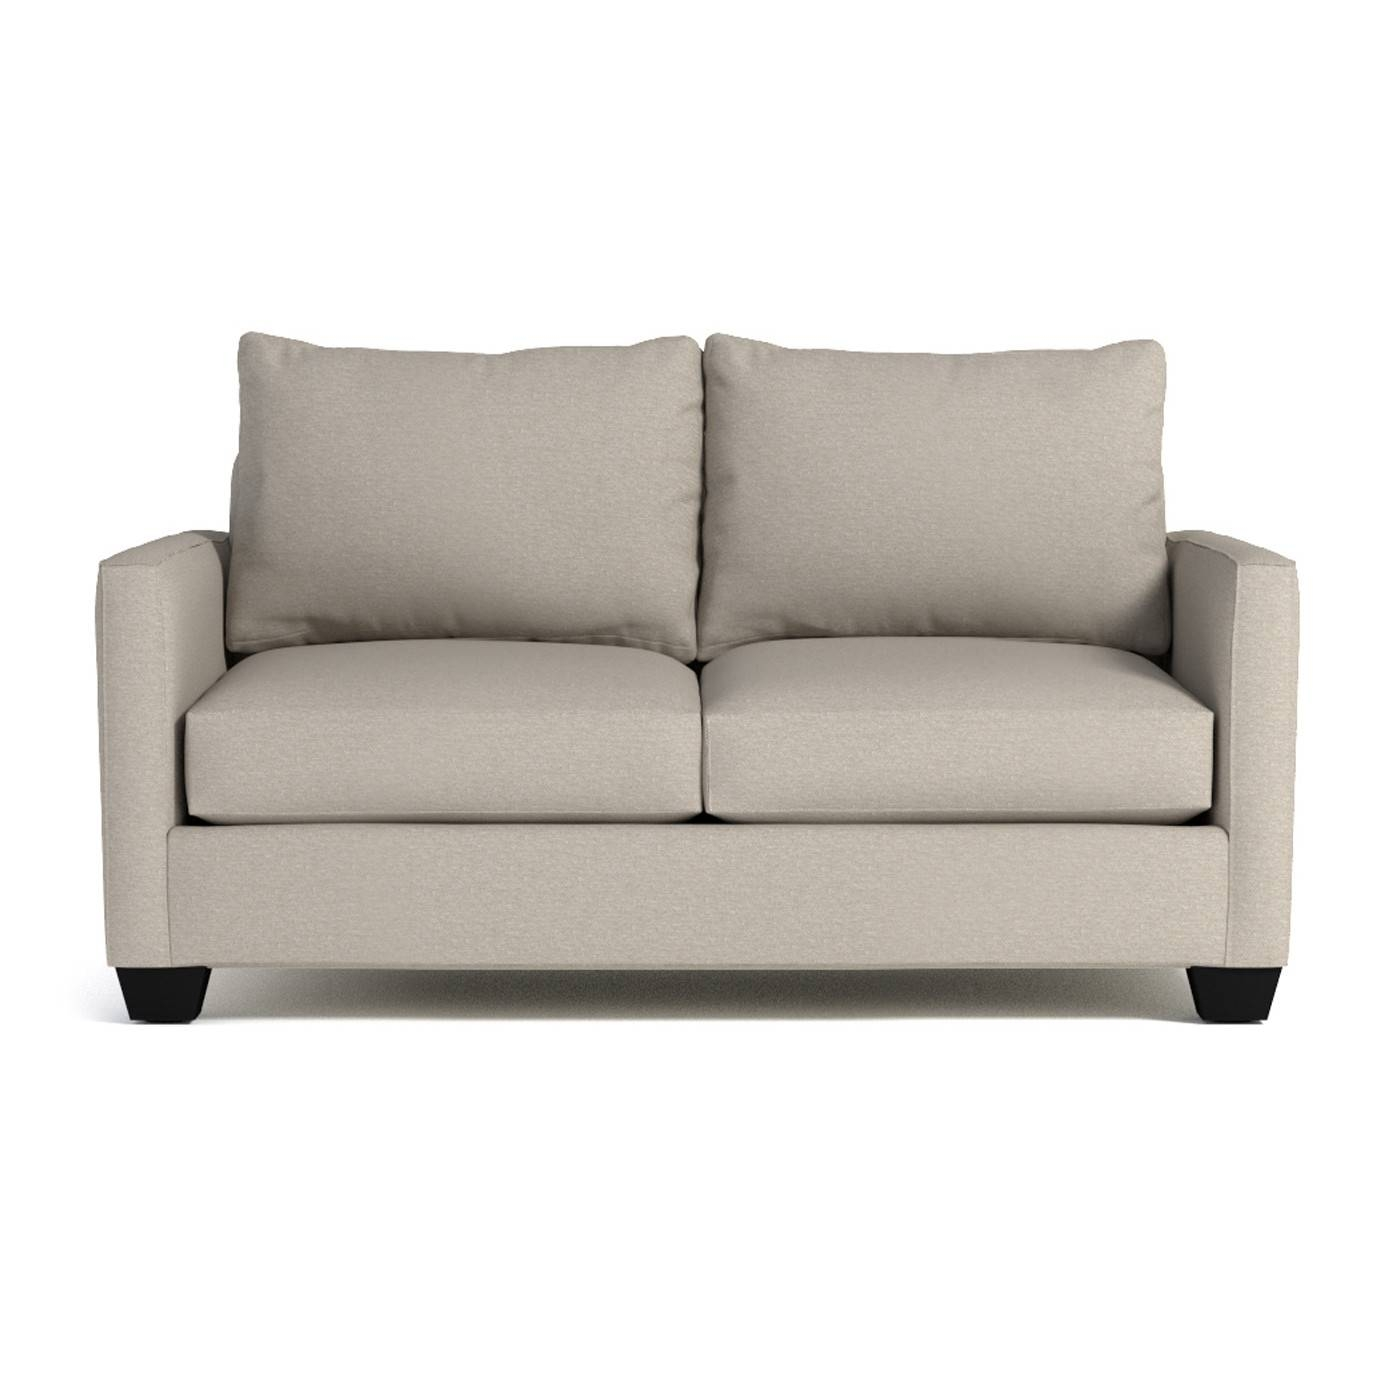 Most Comfortable Sofa You Must Apply For Modern Room Design with Comfortable Sofas And Chairs (Image 13 of 30)